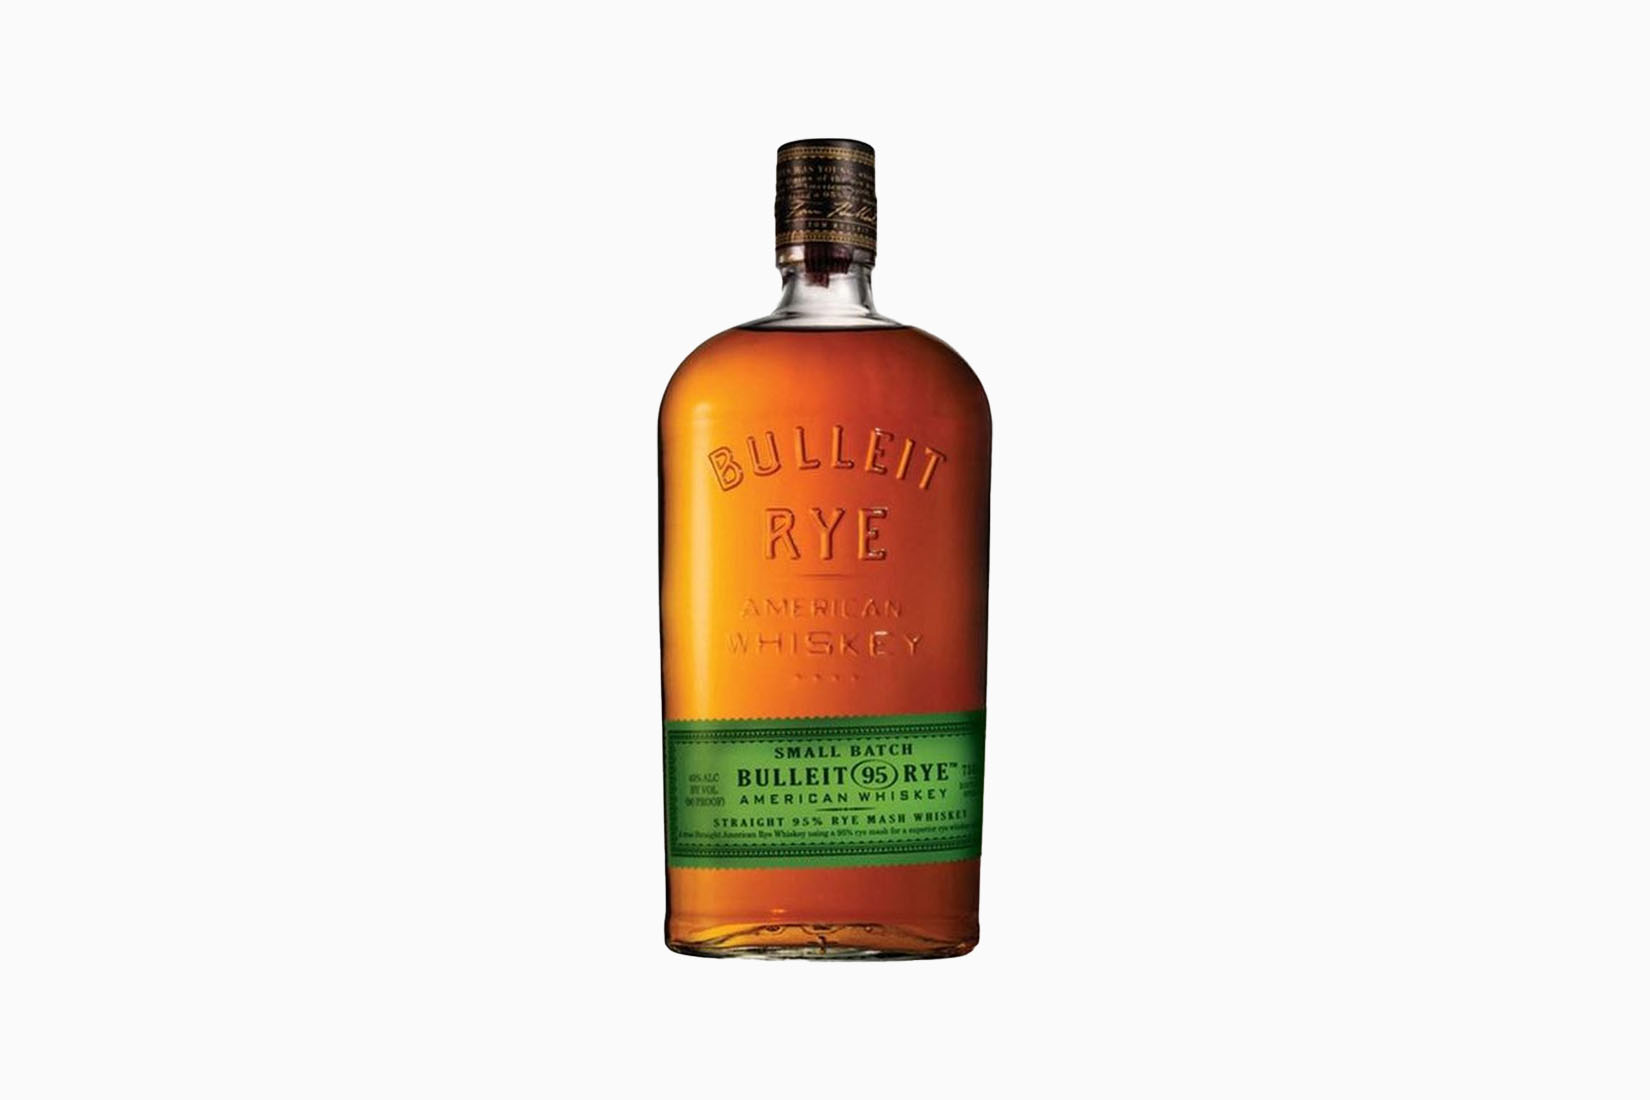 bulleit whiskey bulleit rye price review Luxe Digital